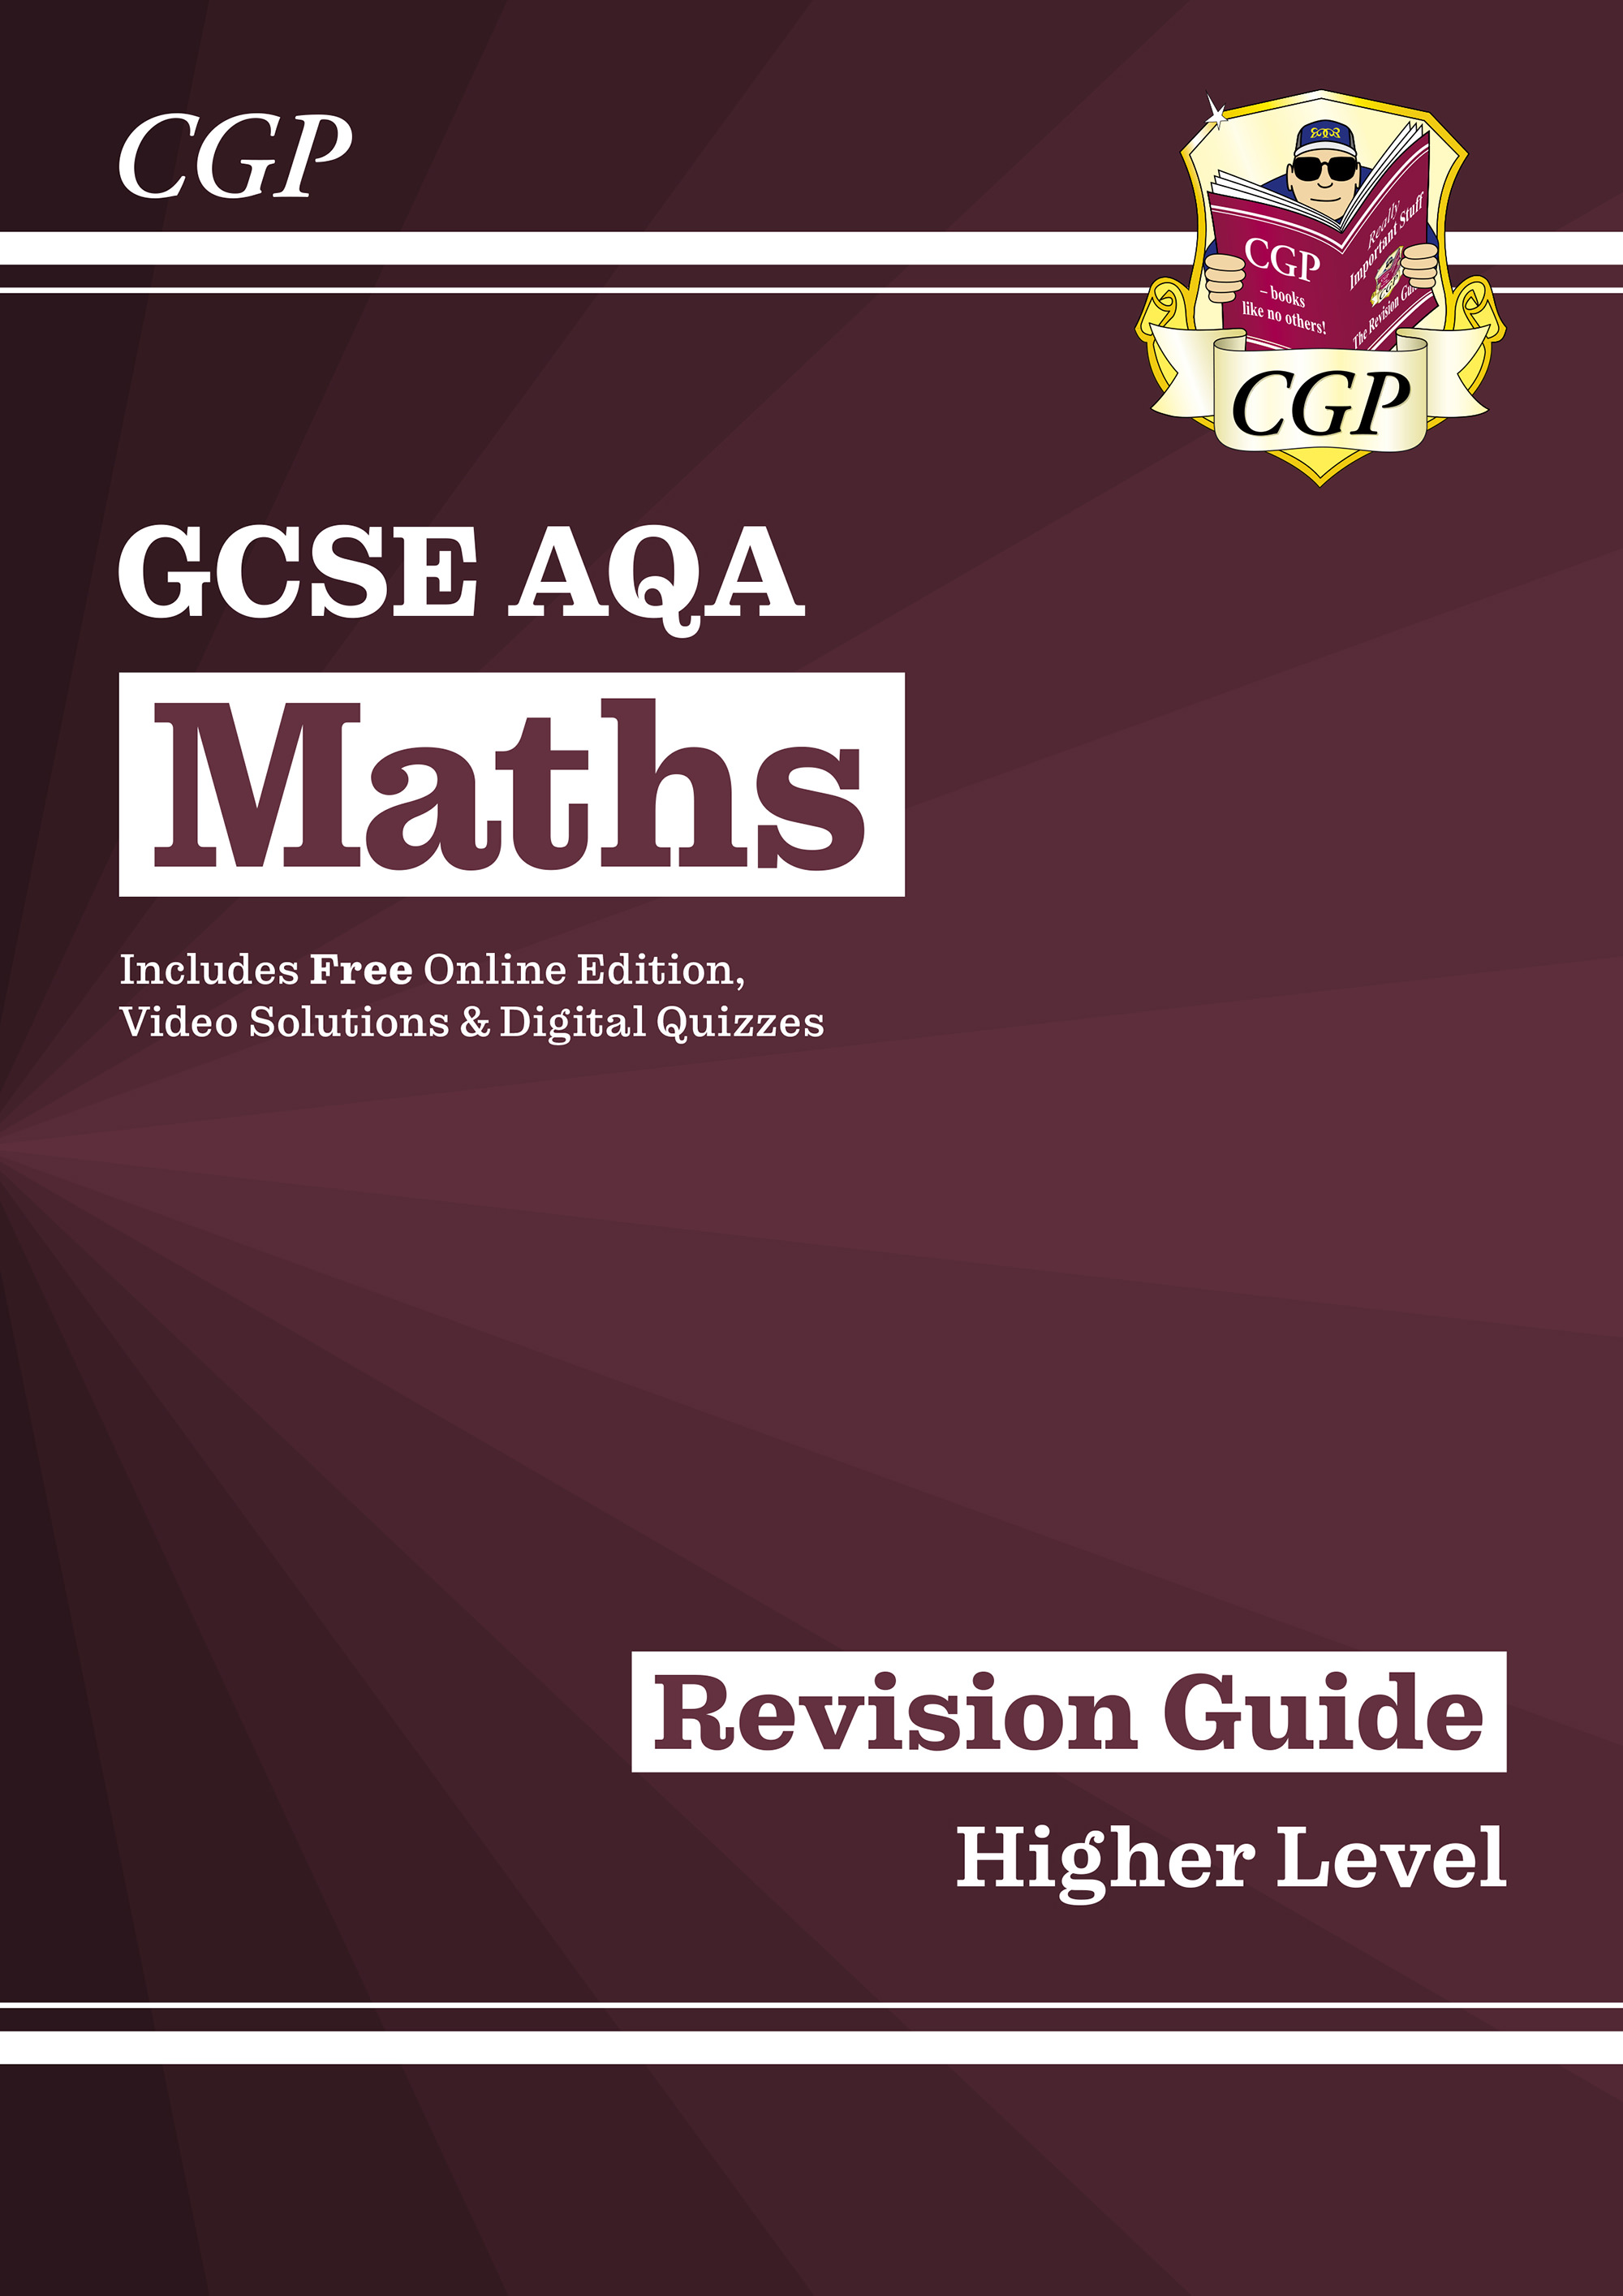 MQHR47D - New 2021 GCSE Maths AQA Revision Guide: Higher inc Online Edition, Videos & Quizzes Online